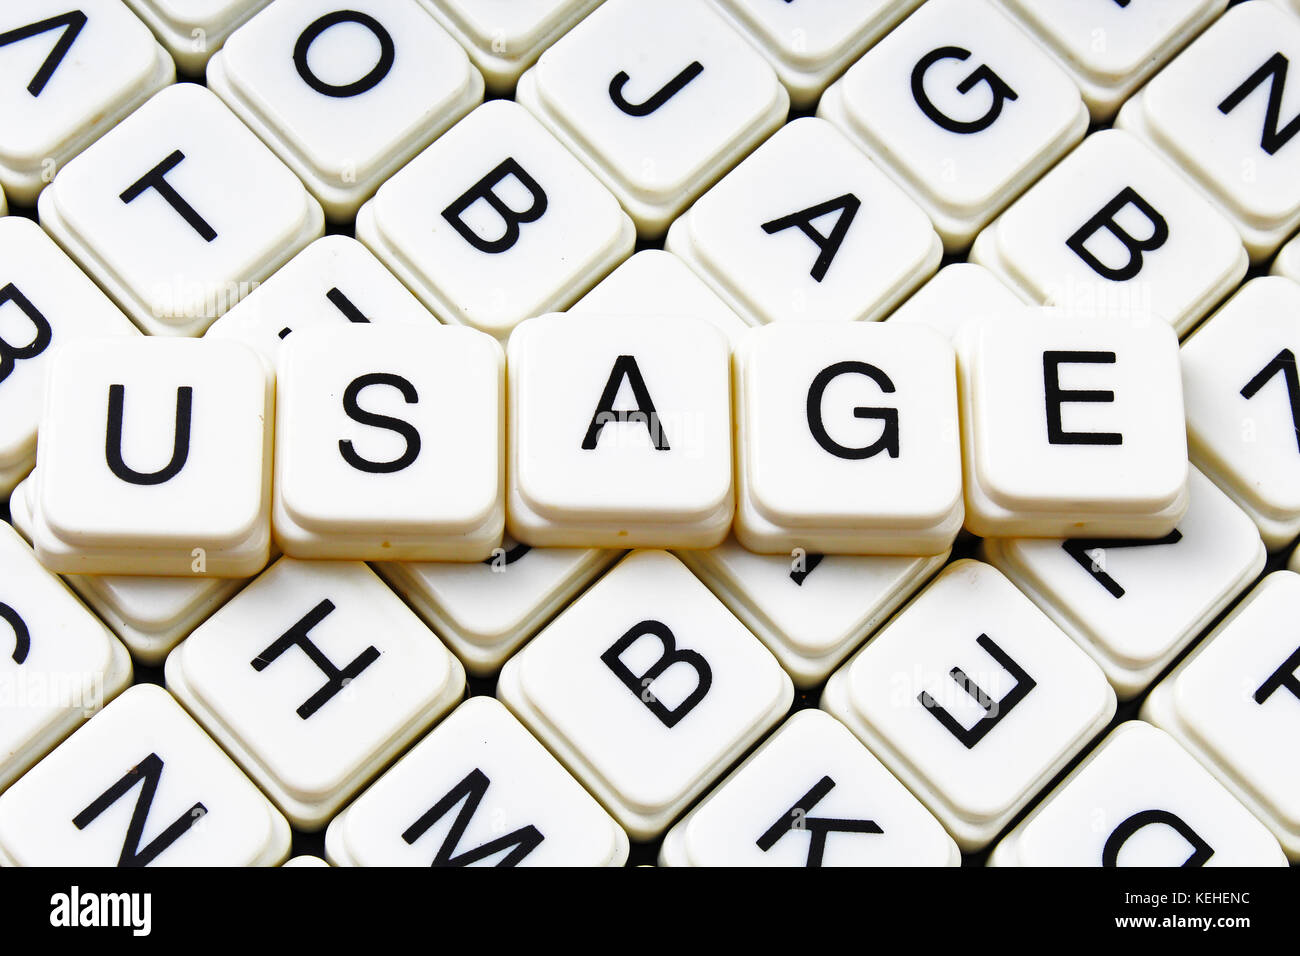 Usage text word crossword. Alphabet letter blocks game texture background. - Stock Image